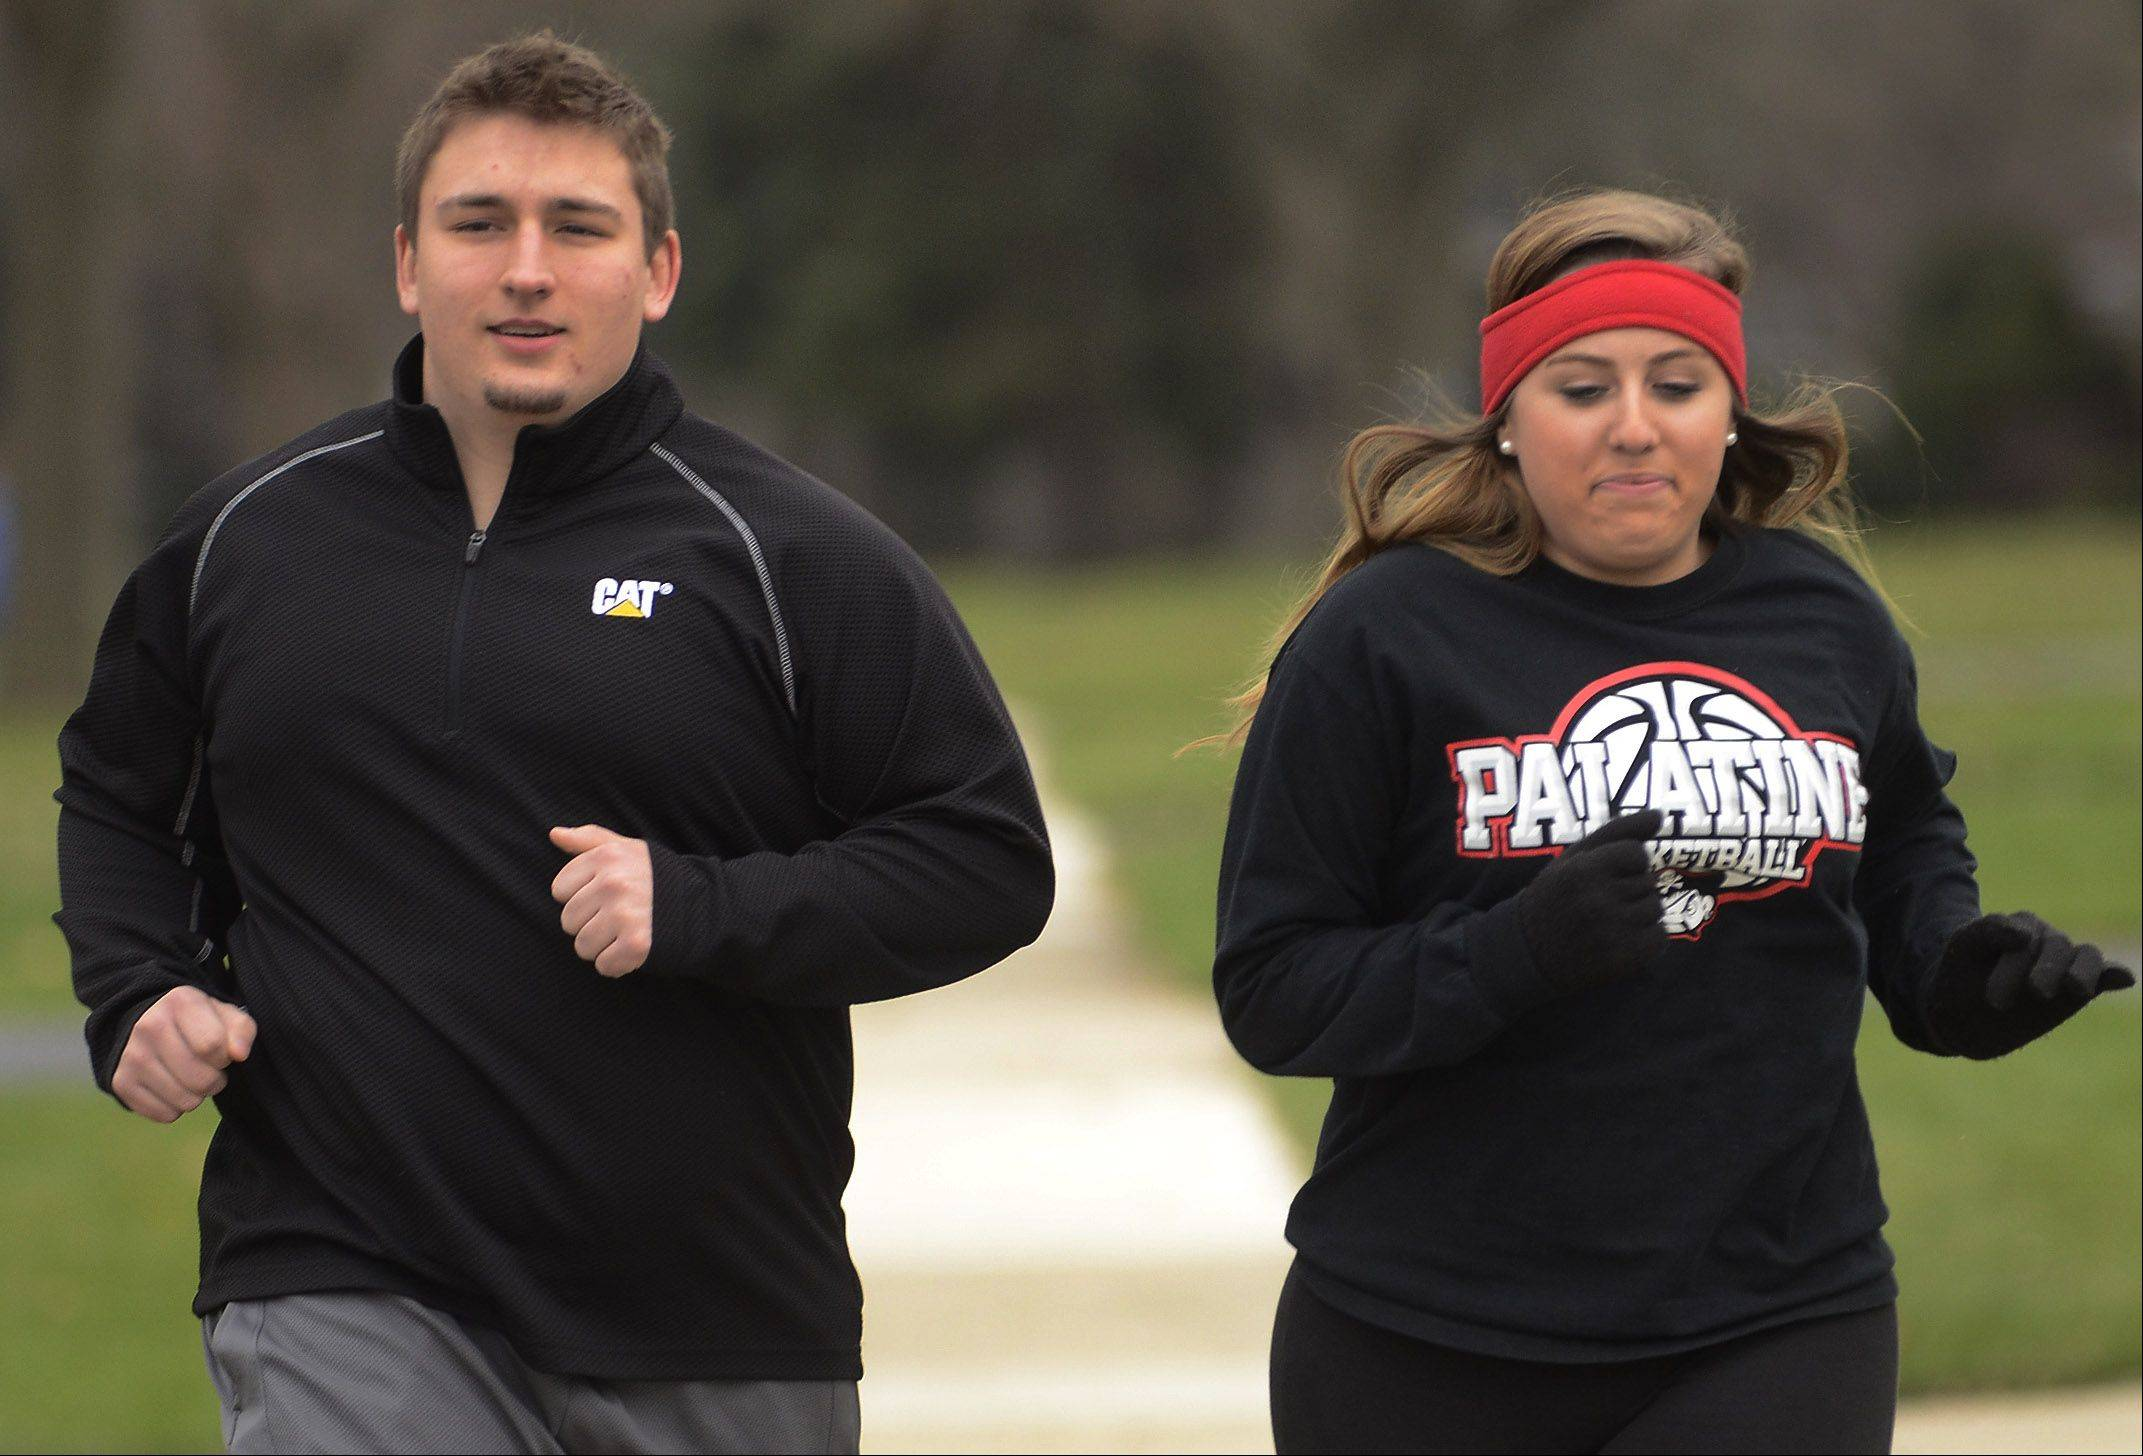 2013 Fittest Loser contestant Joe Gundling and his girlfriend Jen run to keep in shape.